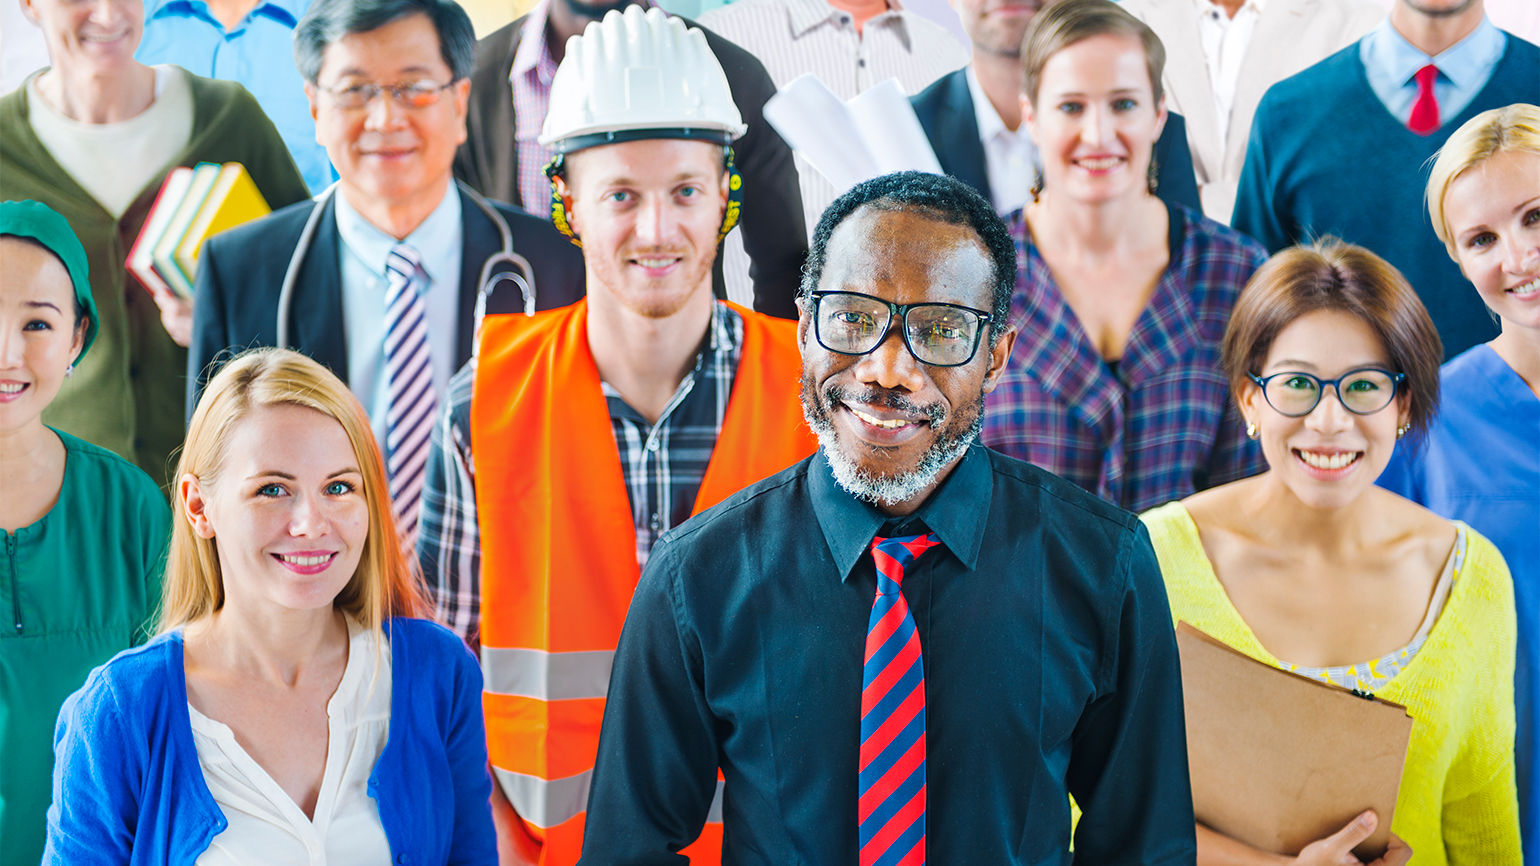 A disparate and wide-ranging group of workers